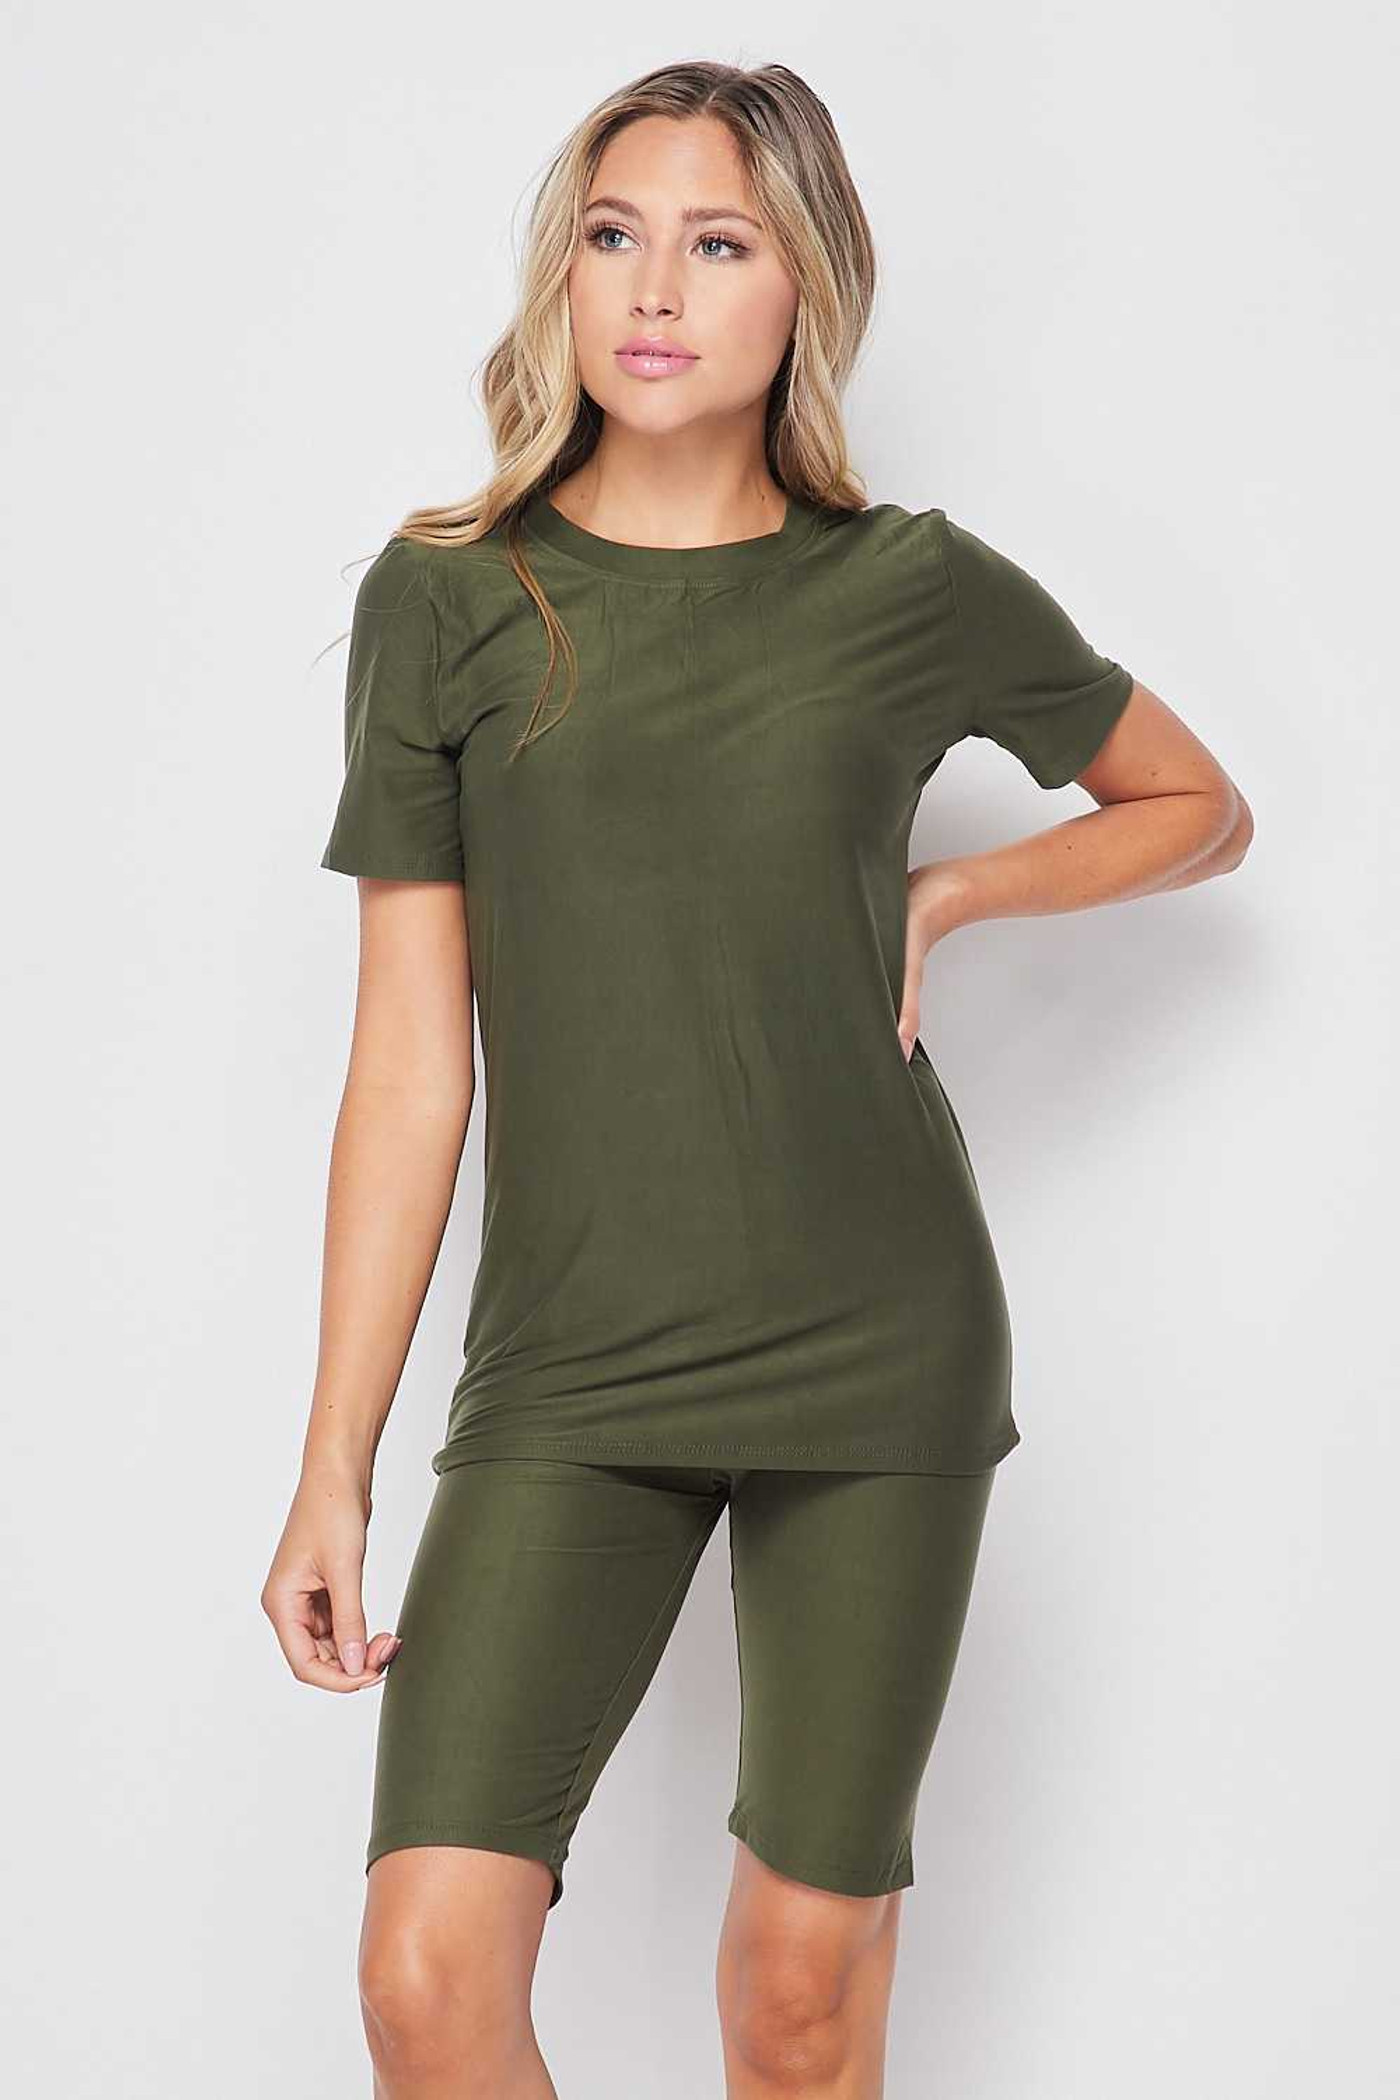 Olive Buttery Soft Basic Solid Biker Shorts and T-Shirt Set